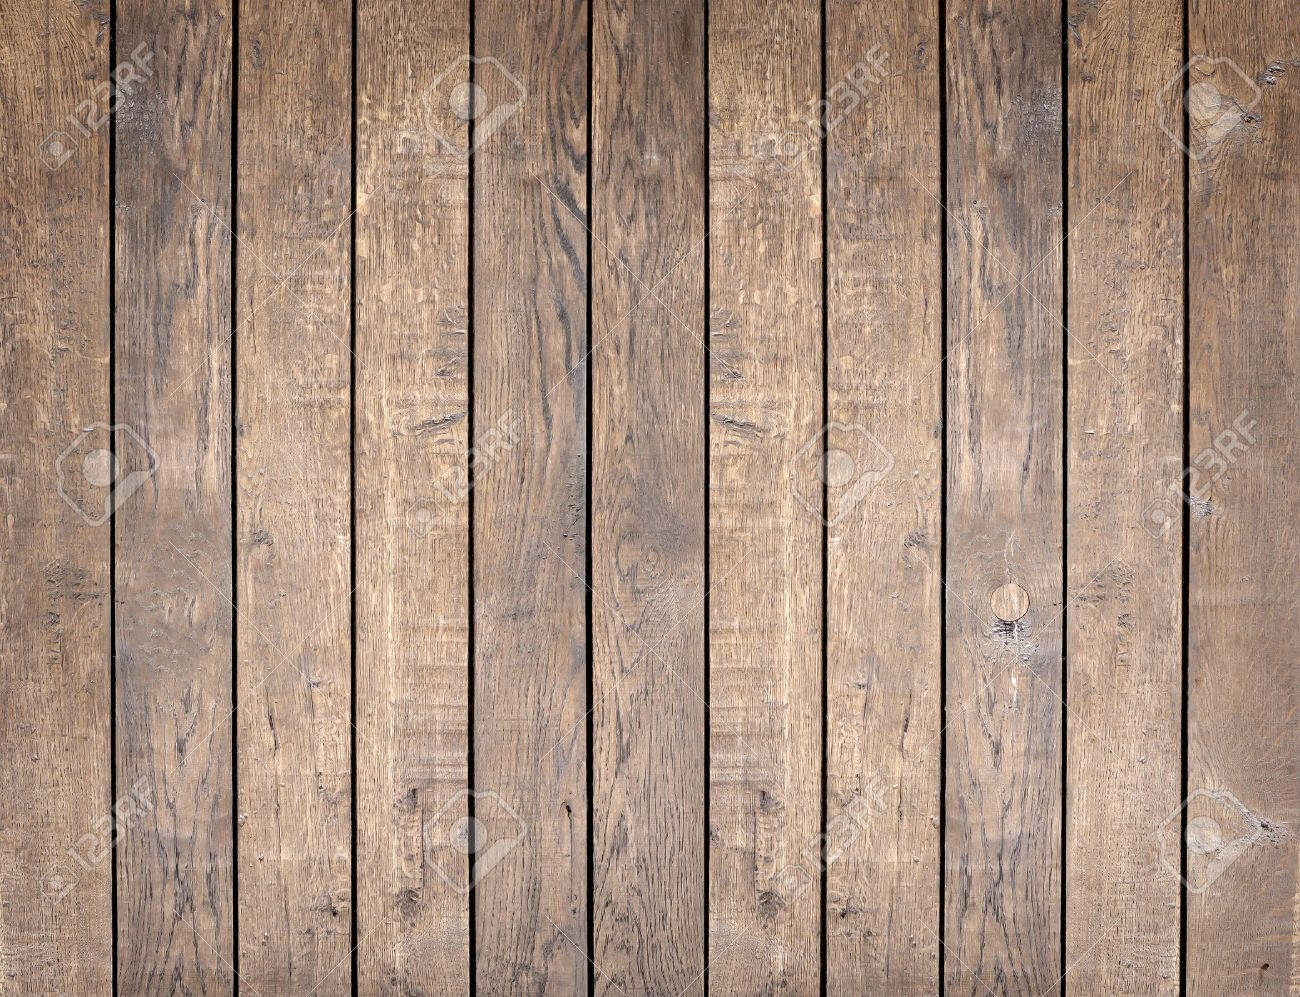 wood texture background old panels stock photo picture and royalty